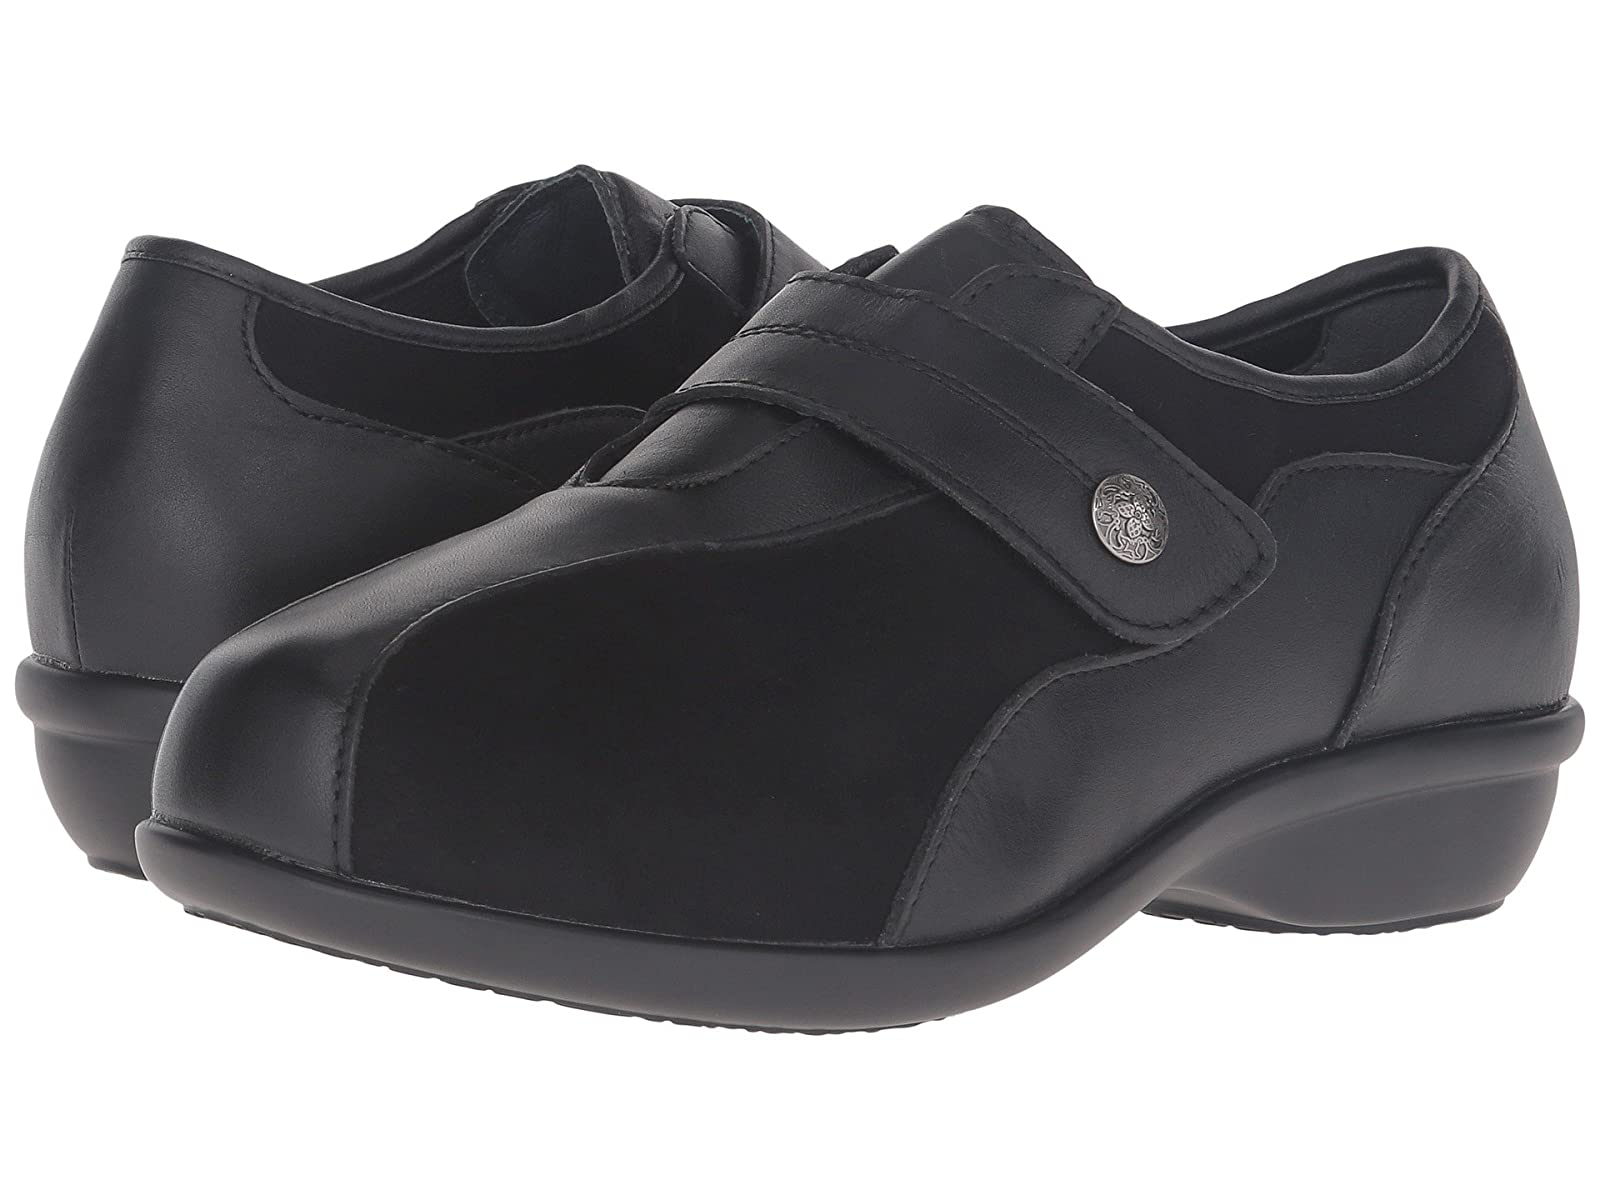 Propet Diana StrapAtmospheric grades have affordable shoes